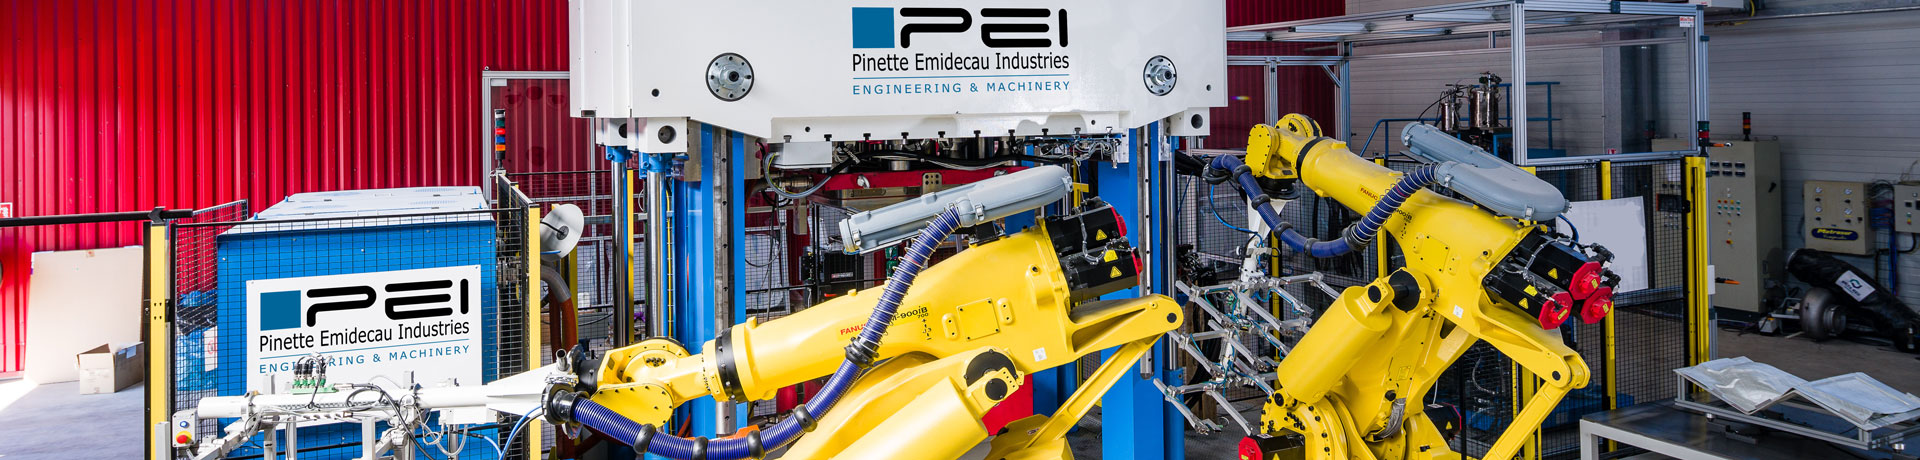 PINETTE P.E.I. is a supplier of hydraulic press and automated press systems from 10 to 100,000 kN dedicated to composites preforming and forming.